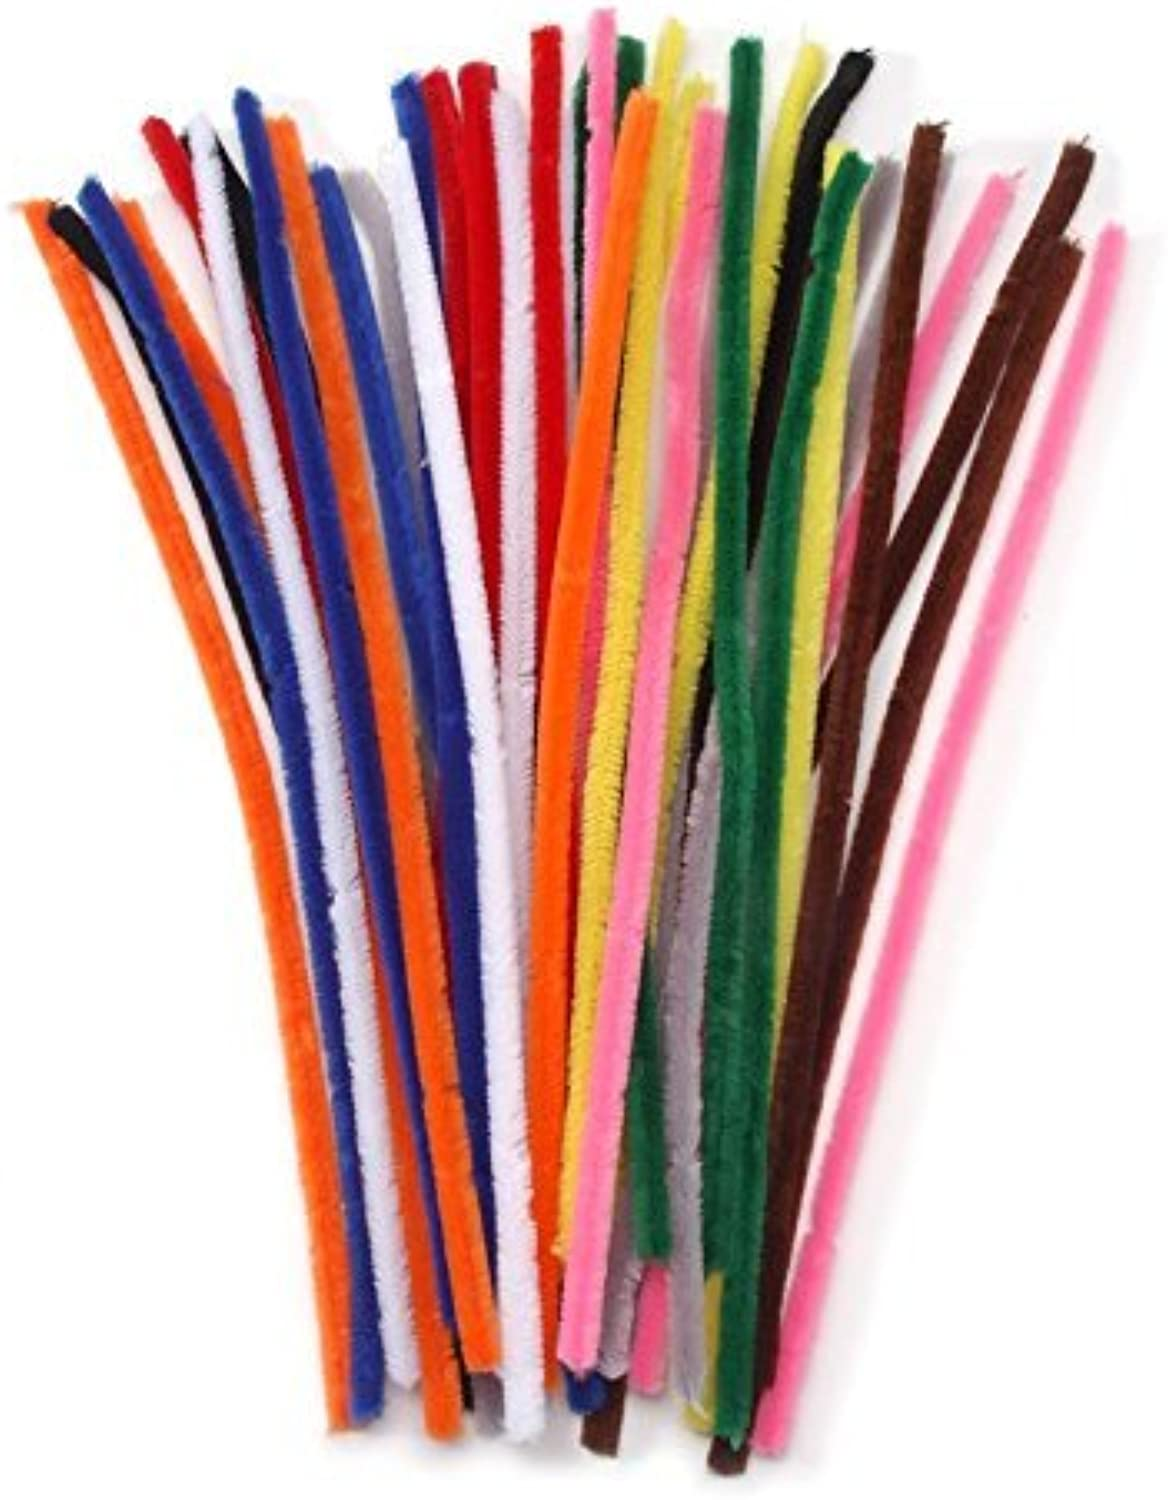 Chenille Stems  15mm  Assorted color  40 pieces by Darice